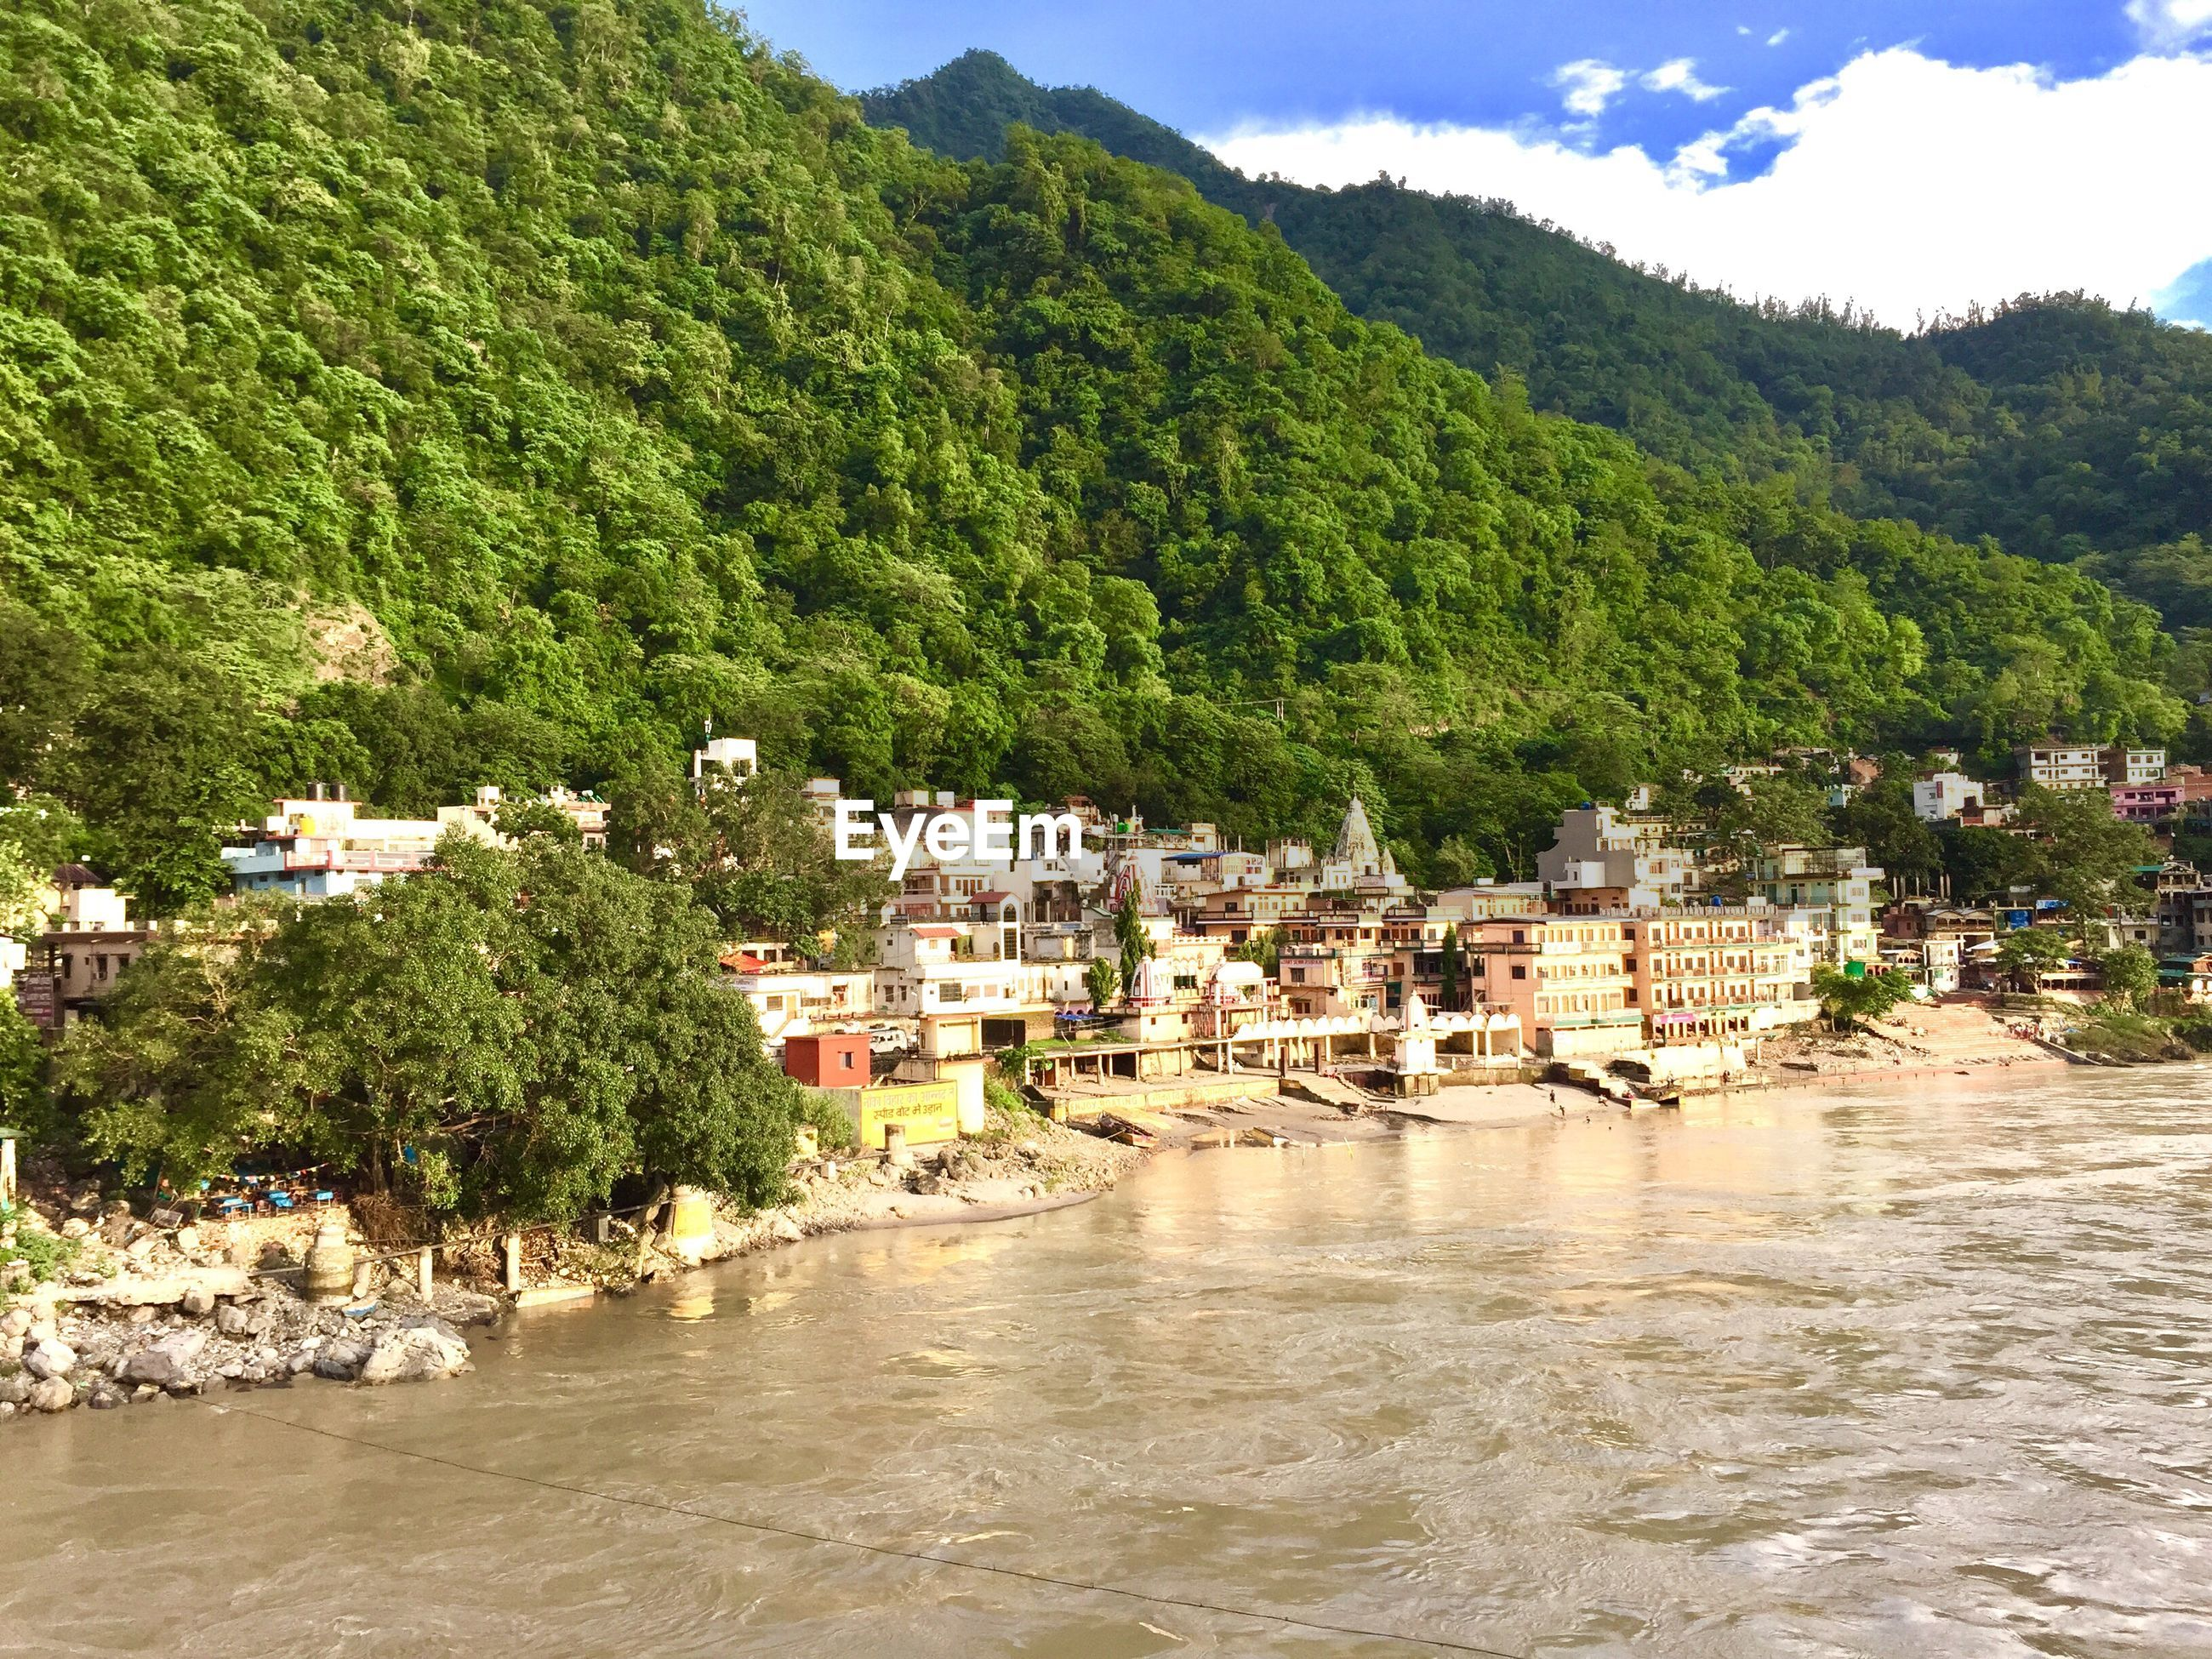 SCENIC VIEW OF RIVER BY BUILDINGS